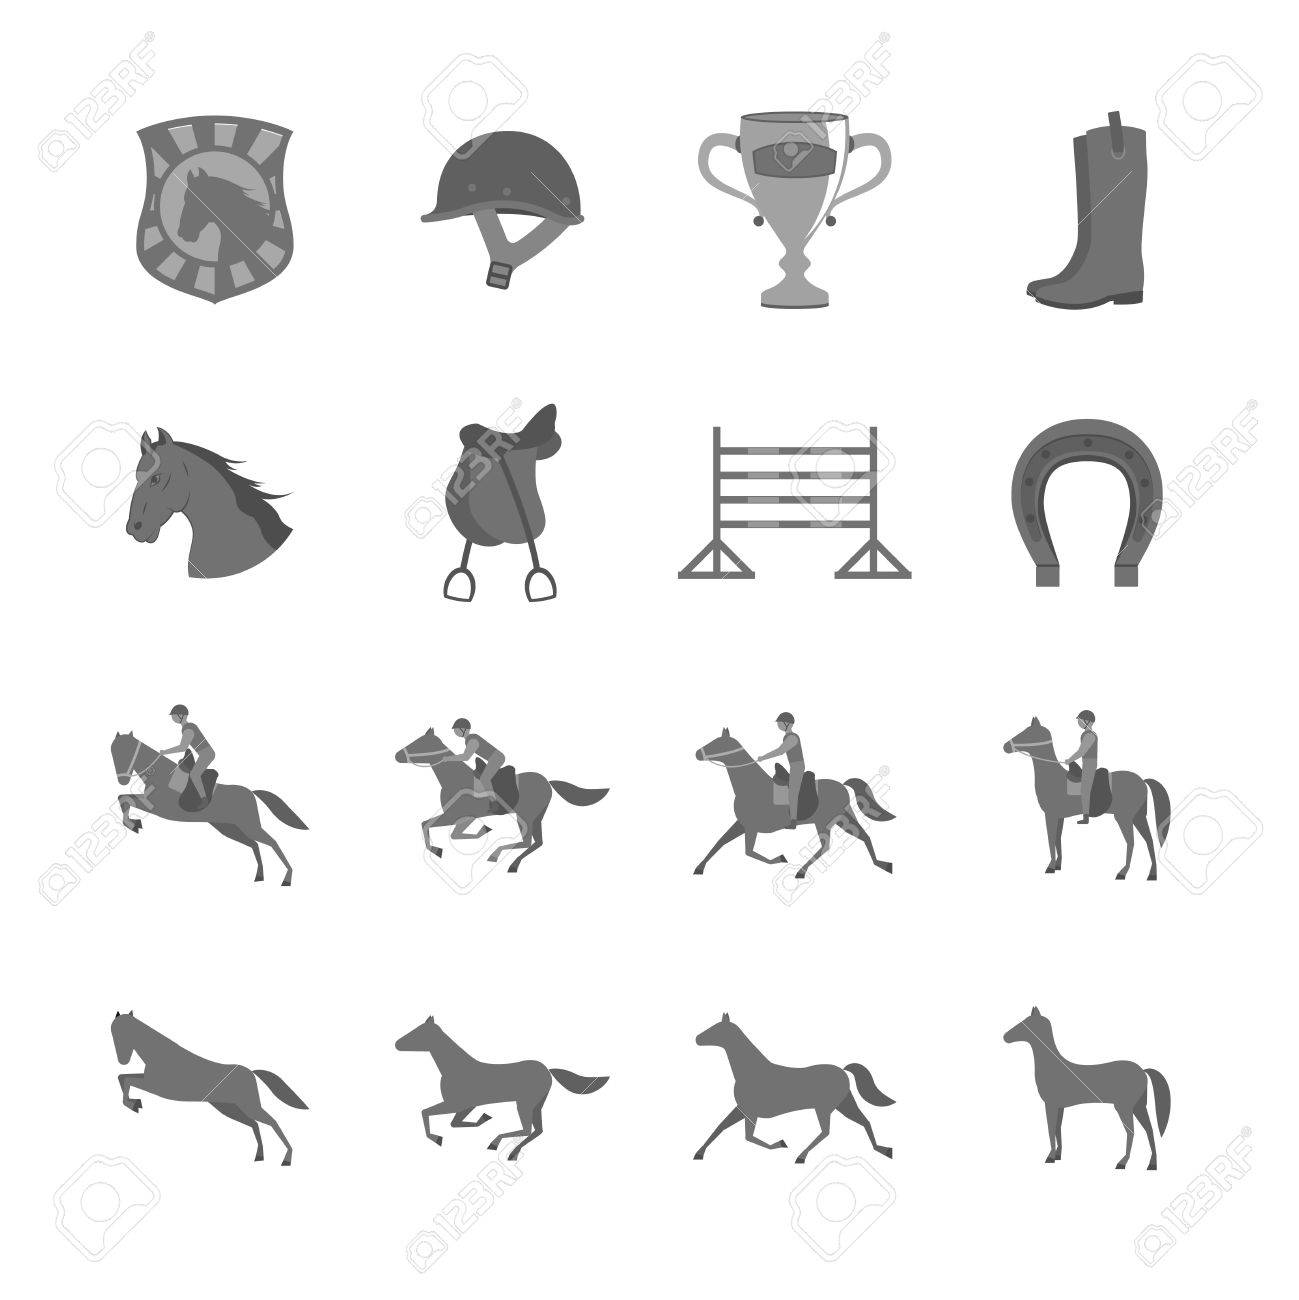 3,899 Dressage Stock Vector Illustration And Royalty Free Dressage ...